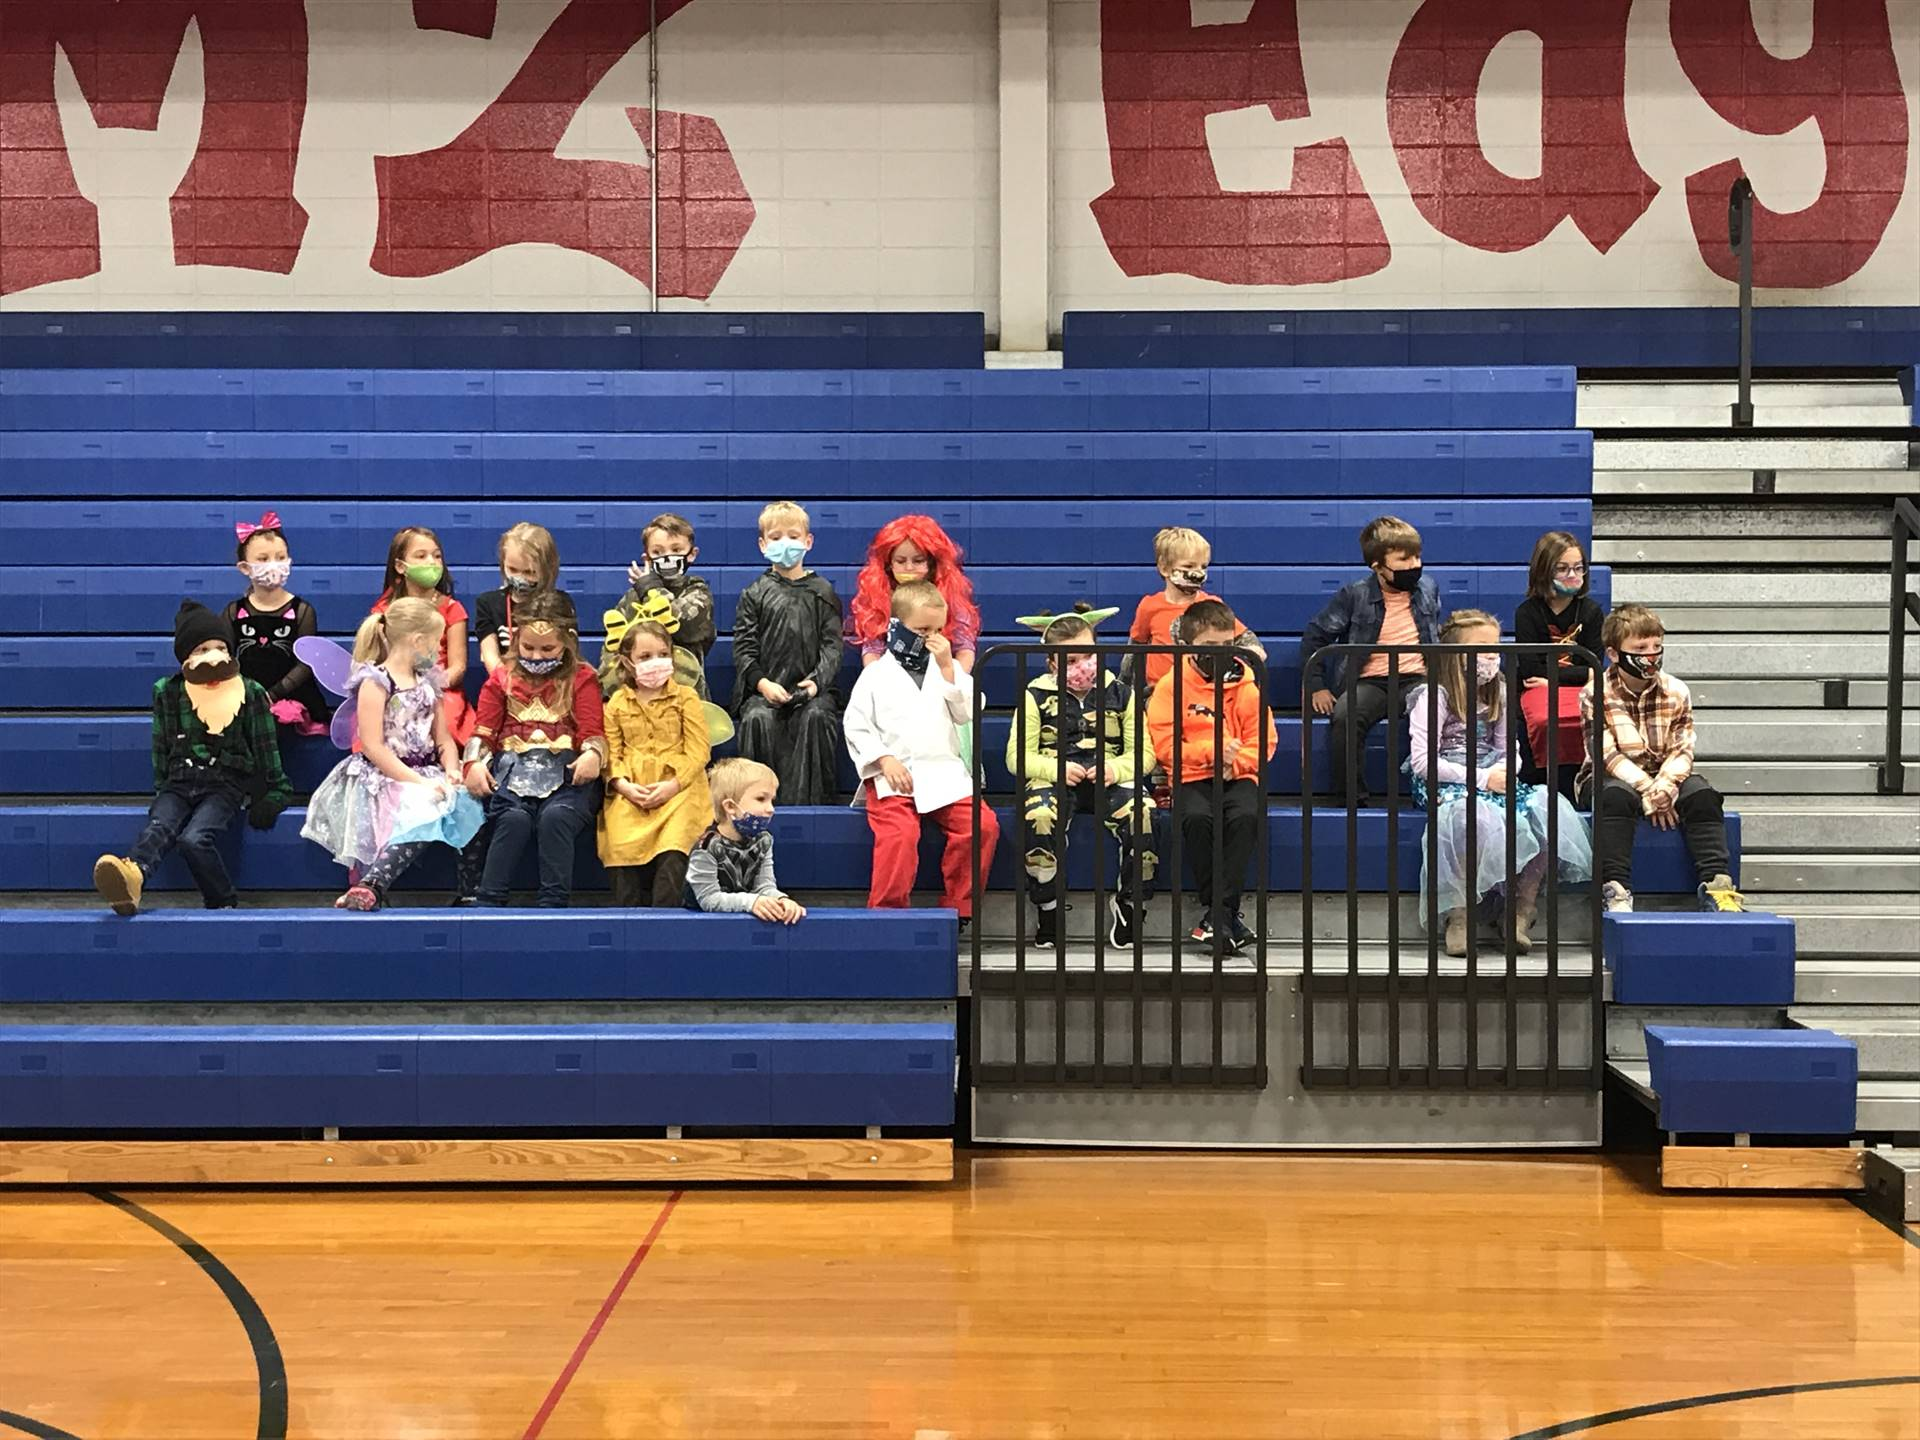 Students sitting in blue bleachers dressed up in Halloween costumes